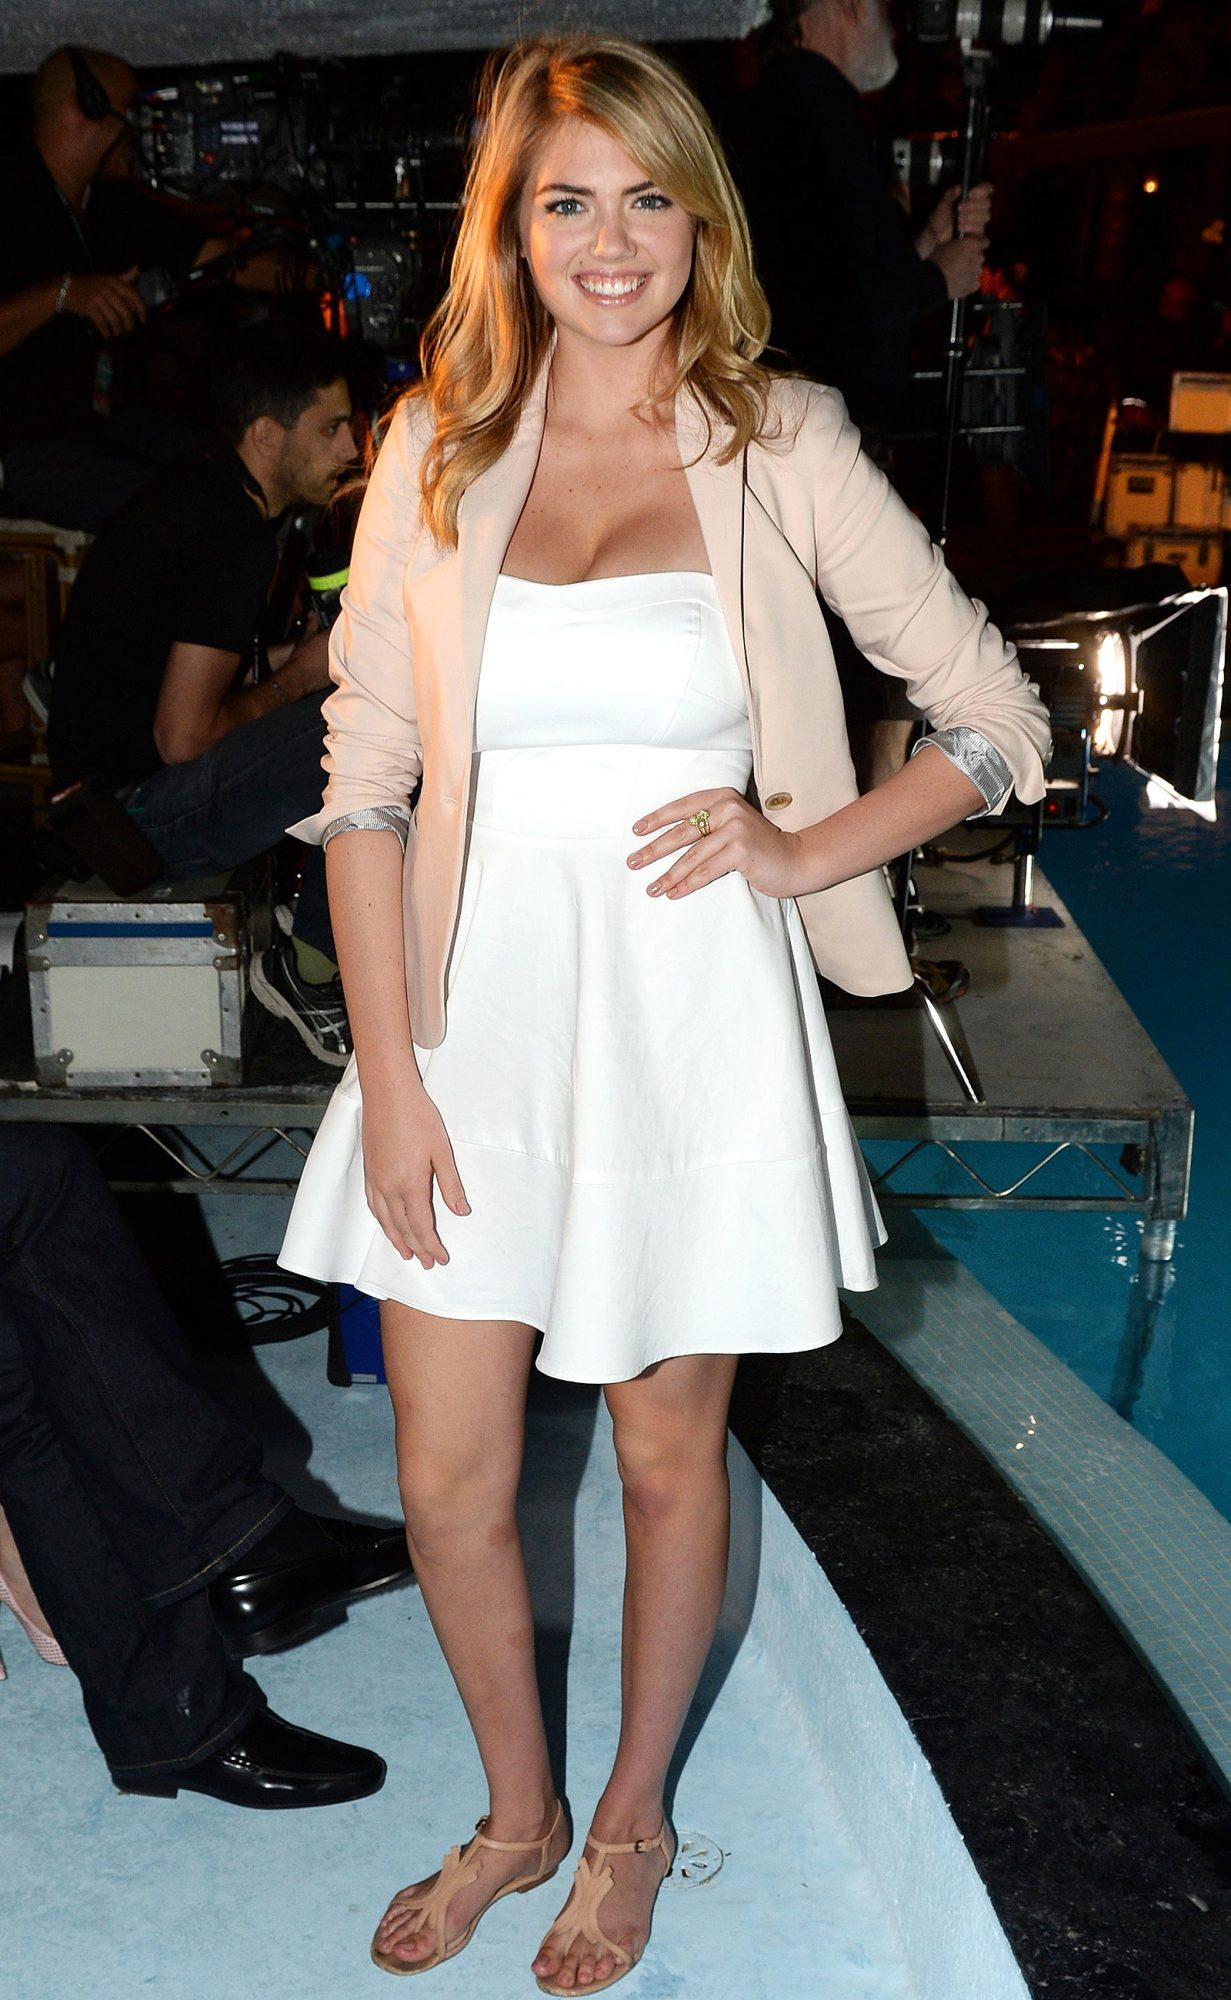 Kate Upton S Best White Dresses Ever People Com Kate upton pictures and photos. kate upton s best white dresses ever